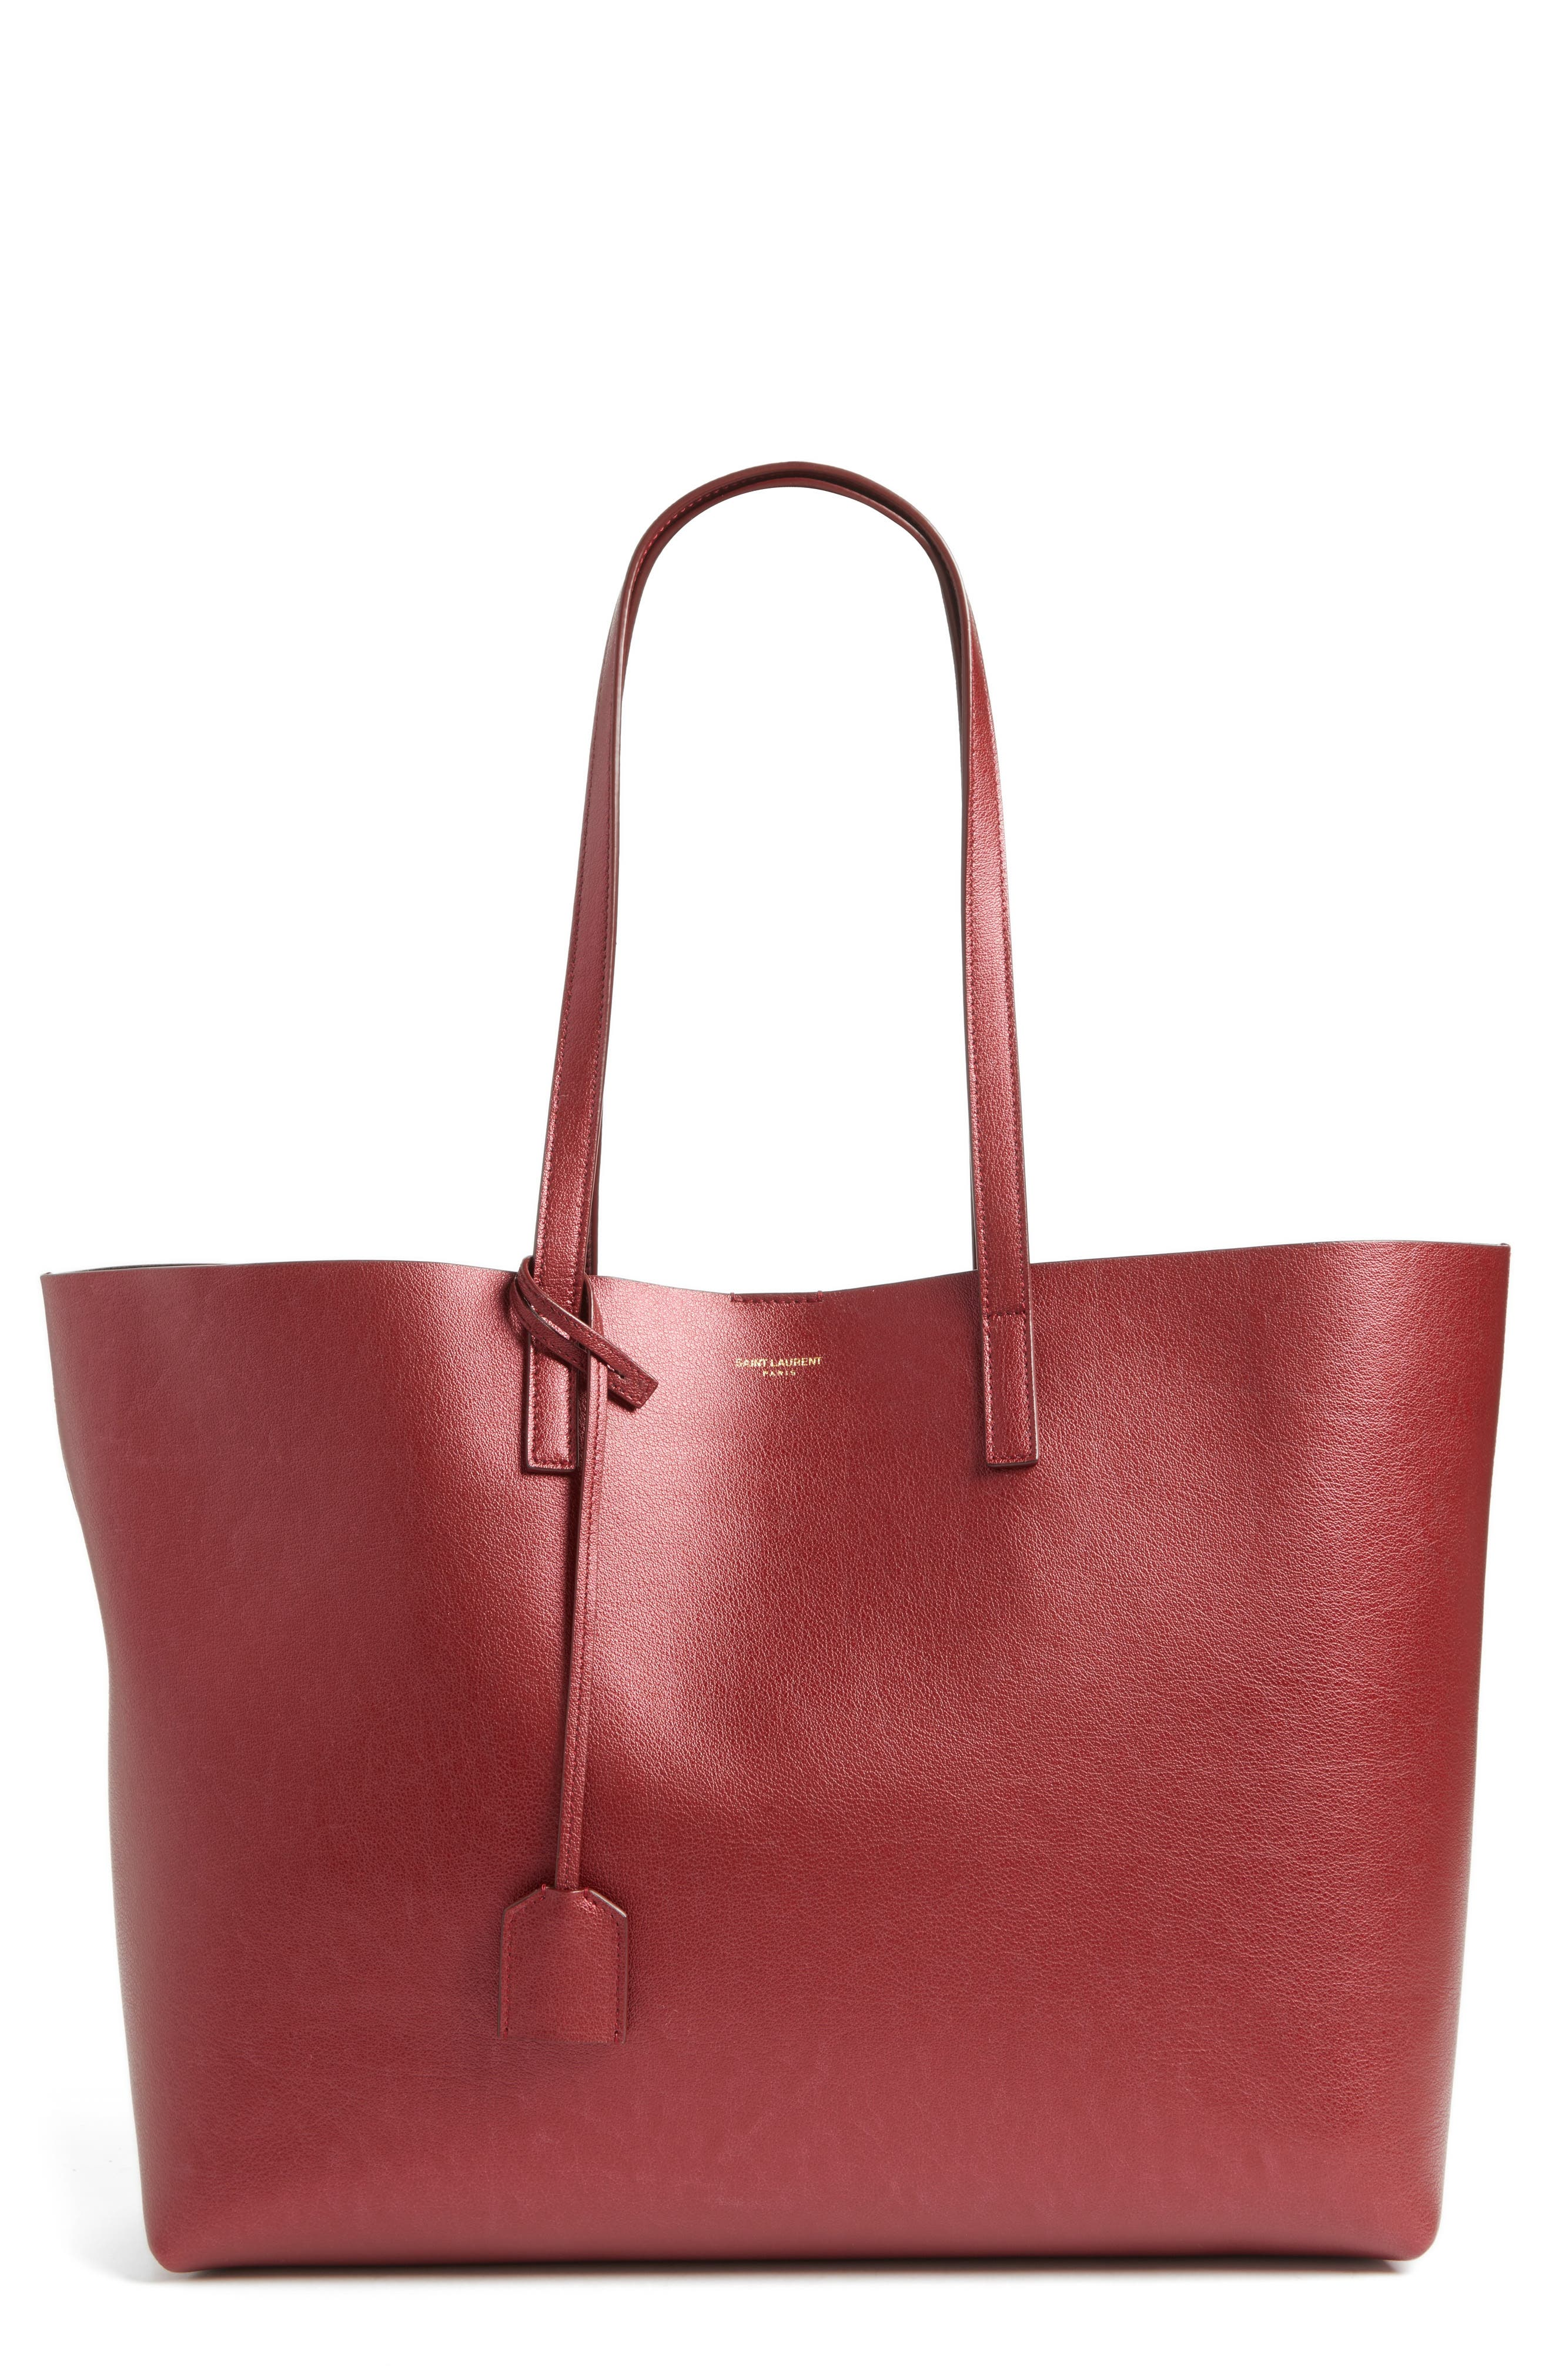 Alternate Image 1 Selected - Saint Laurent East/West Leather Tote with Zip Pouch